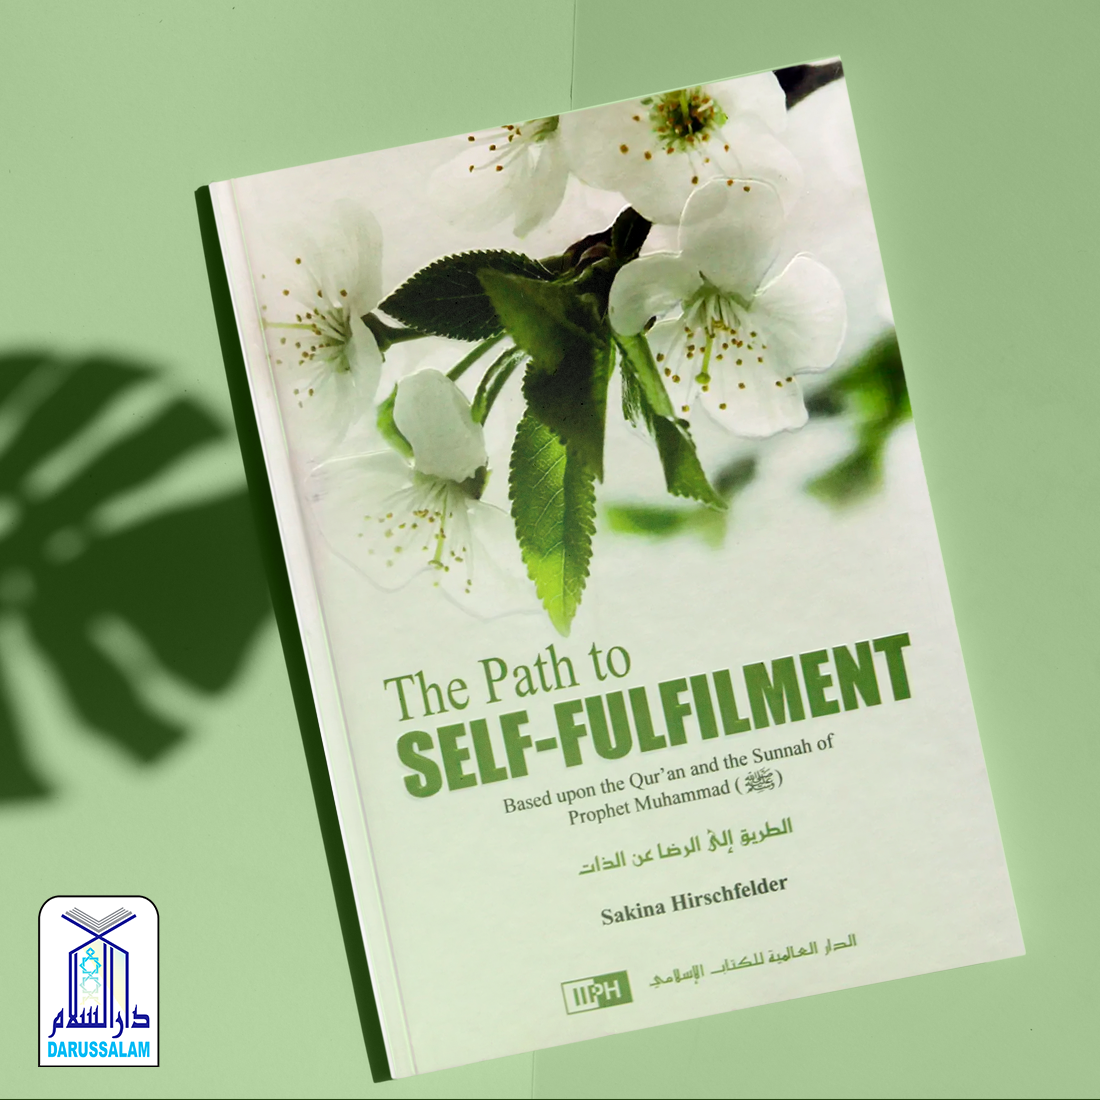 The Path To Self Fulfilment This Book Seeks To Uplift Your Inner Soul And Give You The Necessary Means To Live A Fulfilling Life Islam Islamic Store Ahadith